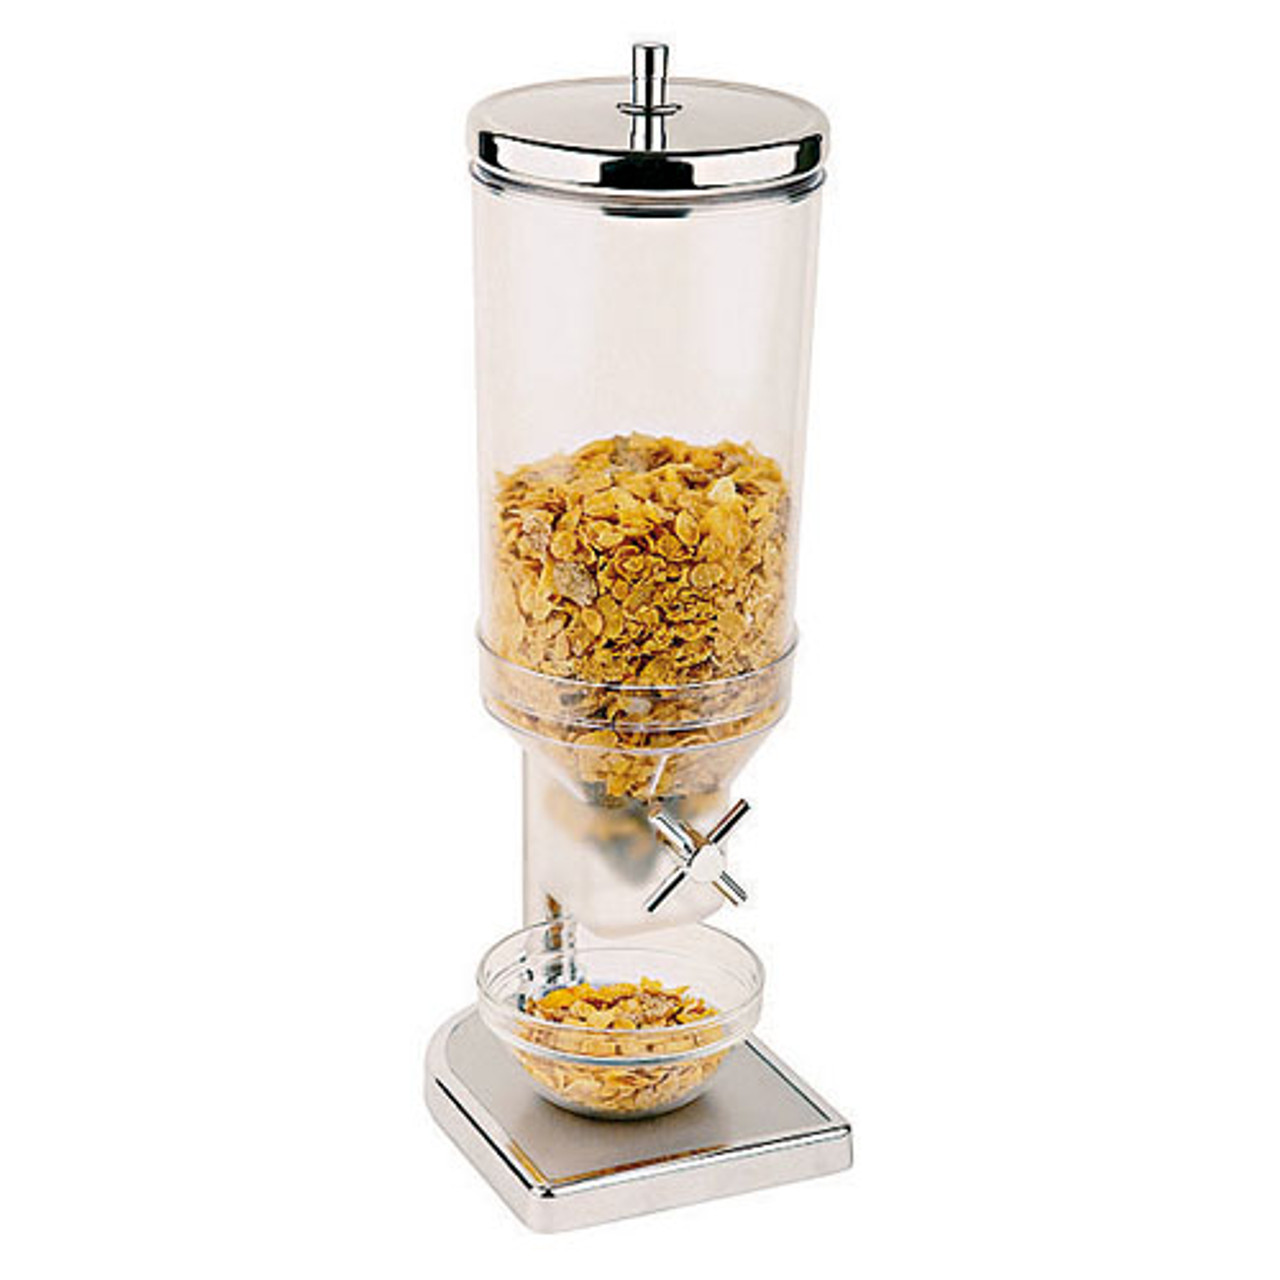 4.7 Quart Polypropylene Cereal Dispenser with S/S Lid, L 8.625 x W 13.875 x H 20.5